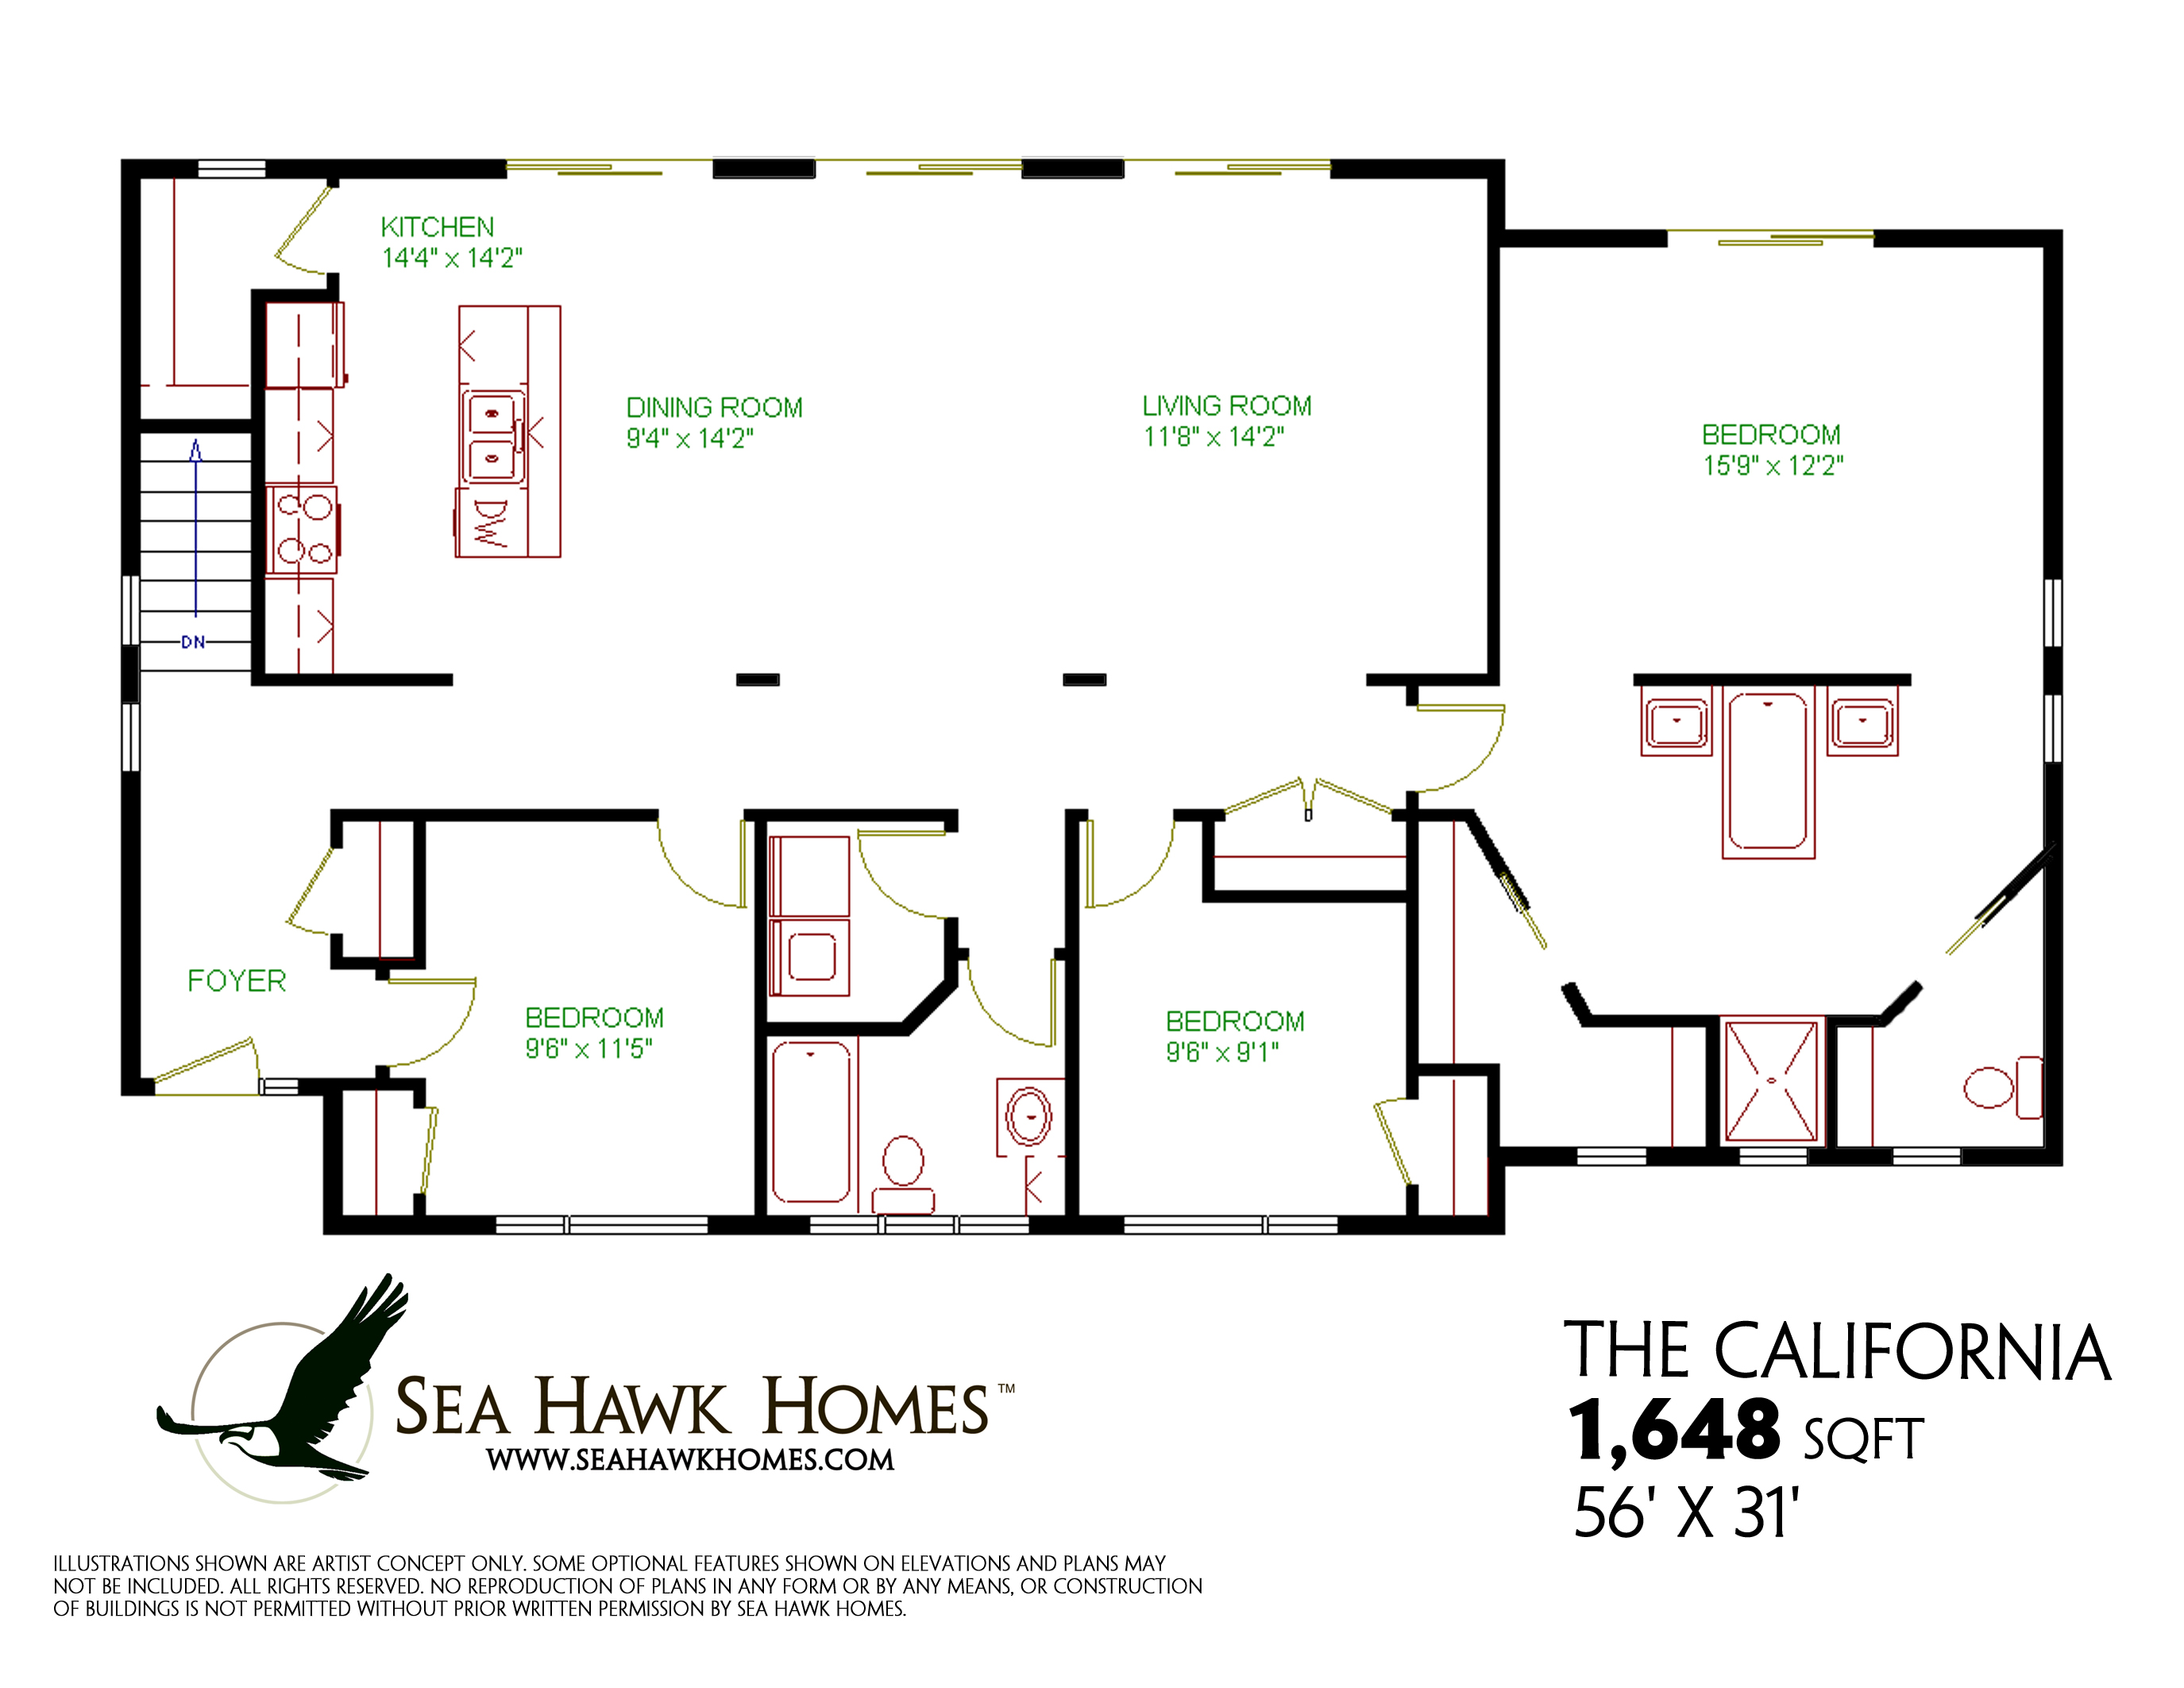 California Sea Hawk Homes